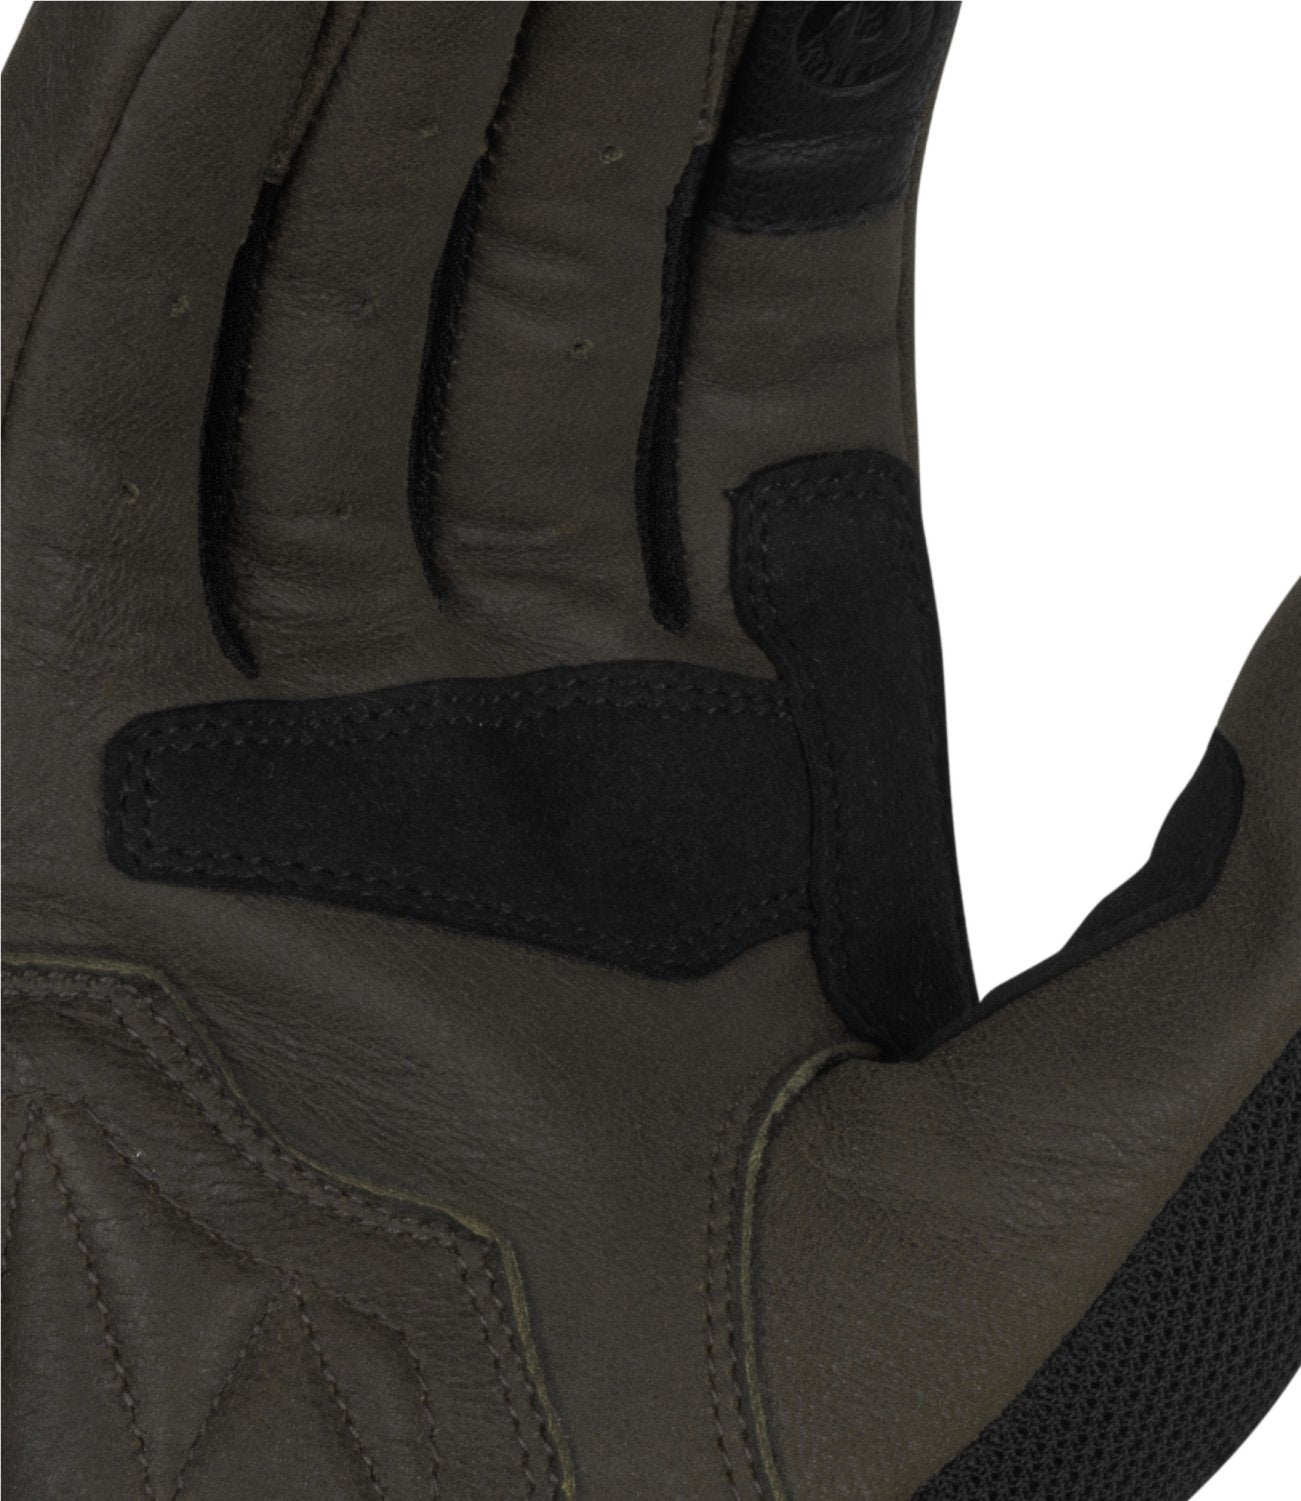 Rynox Urban Gloves Copper 6